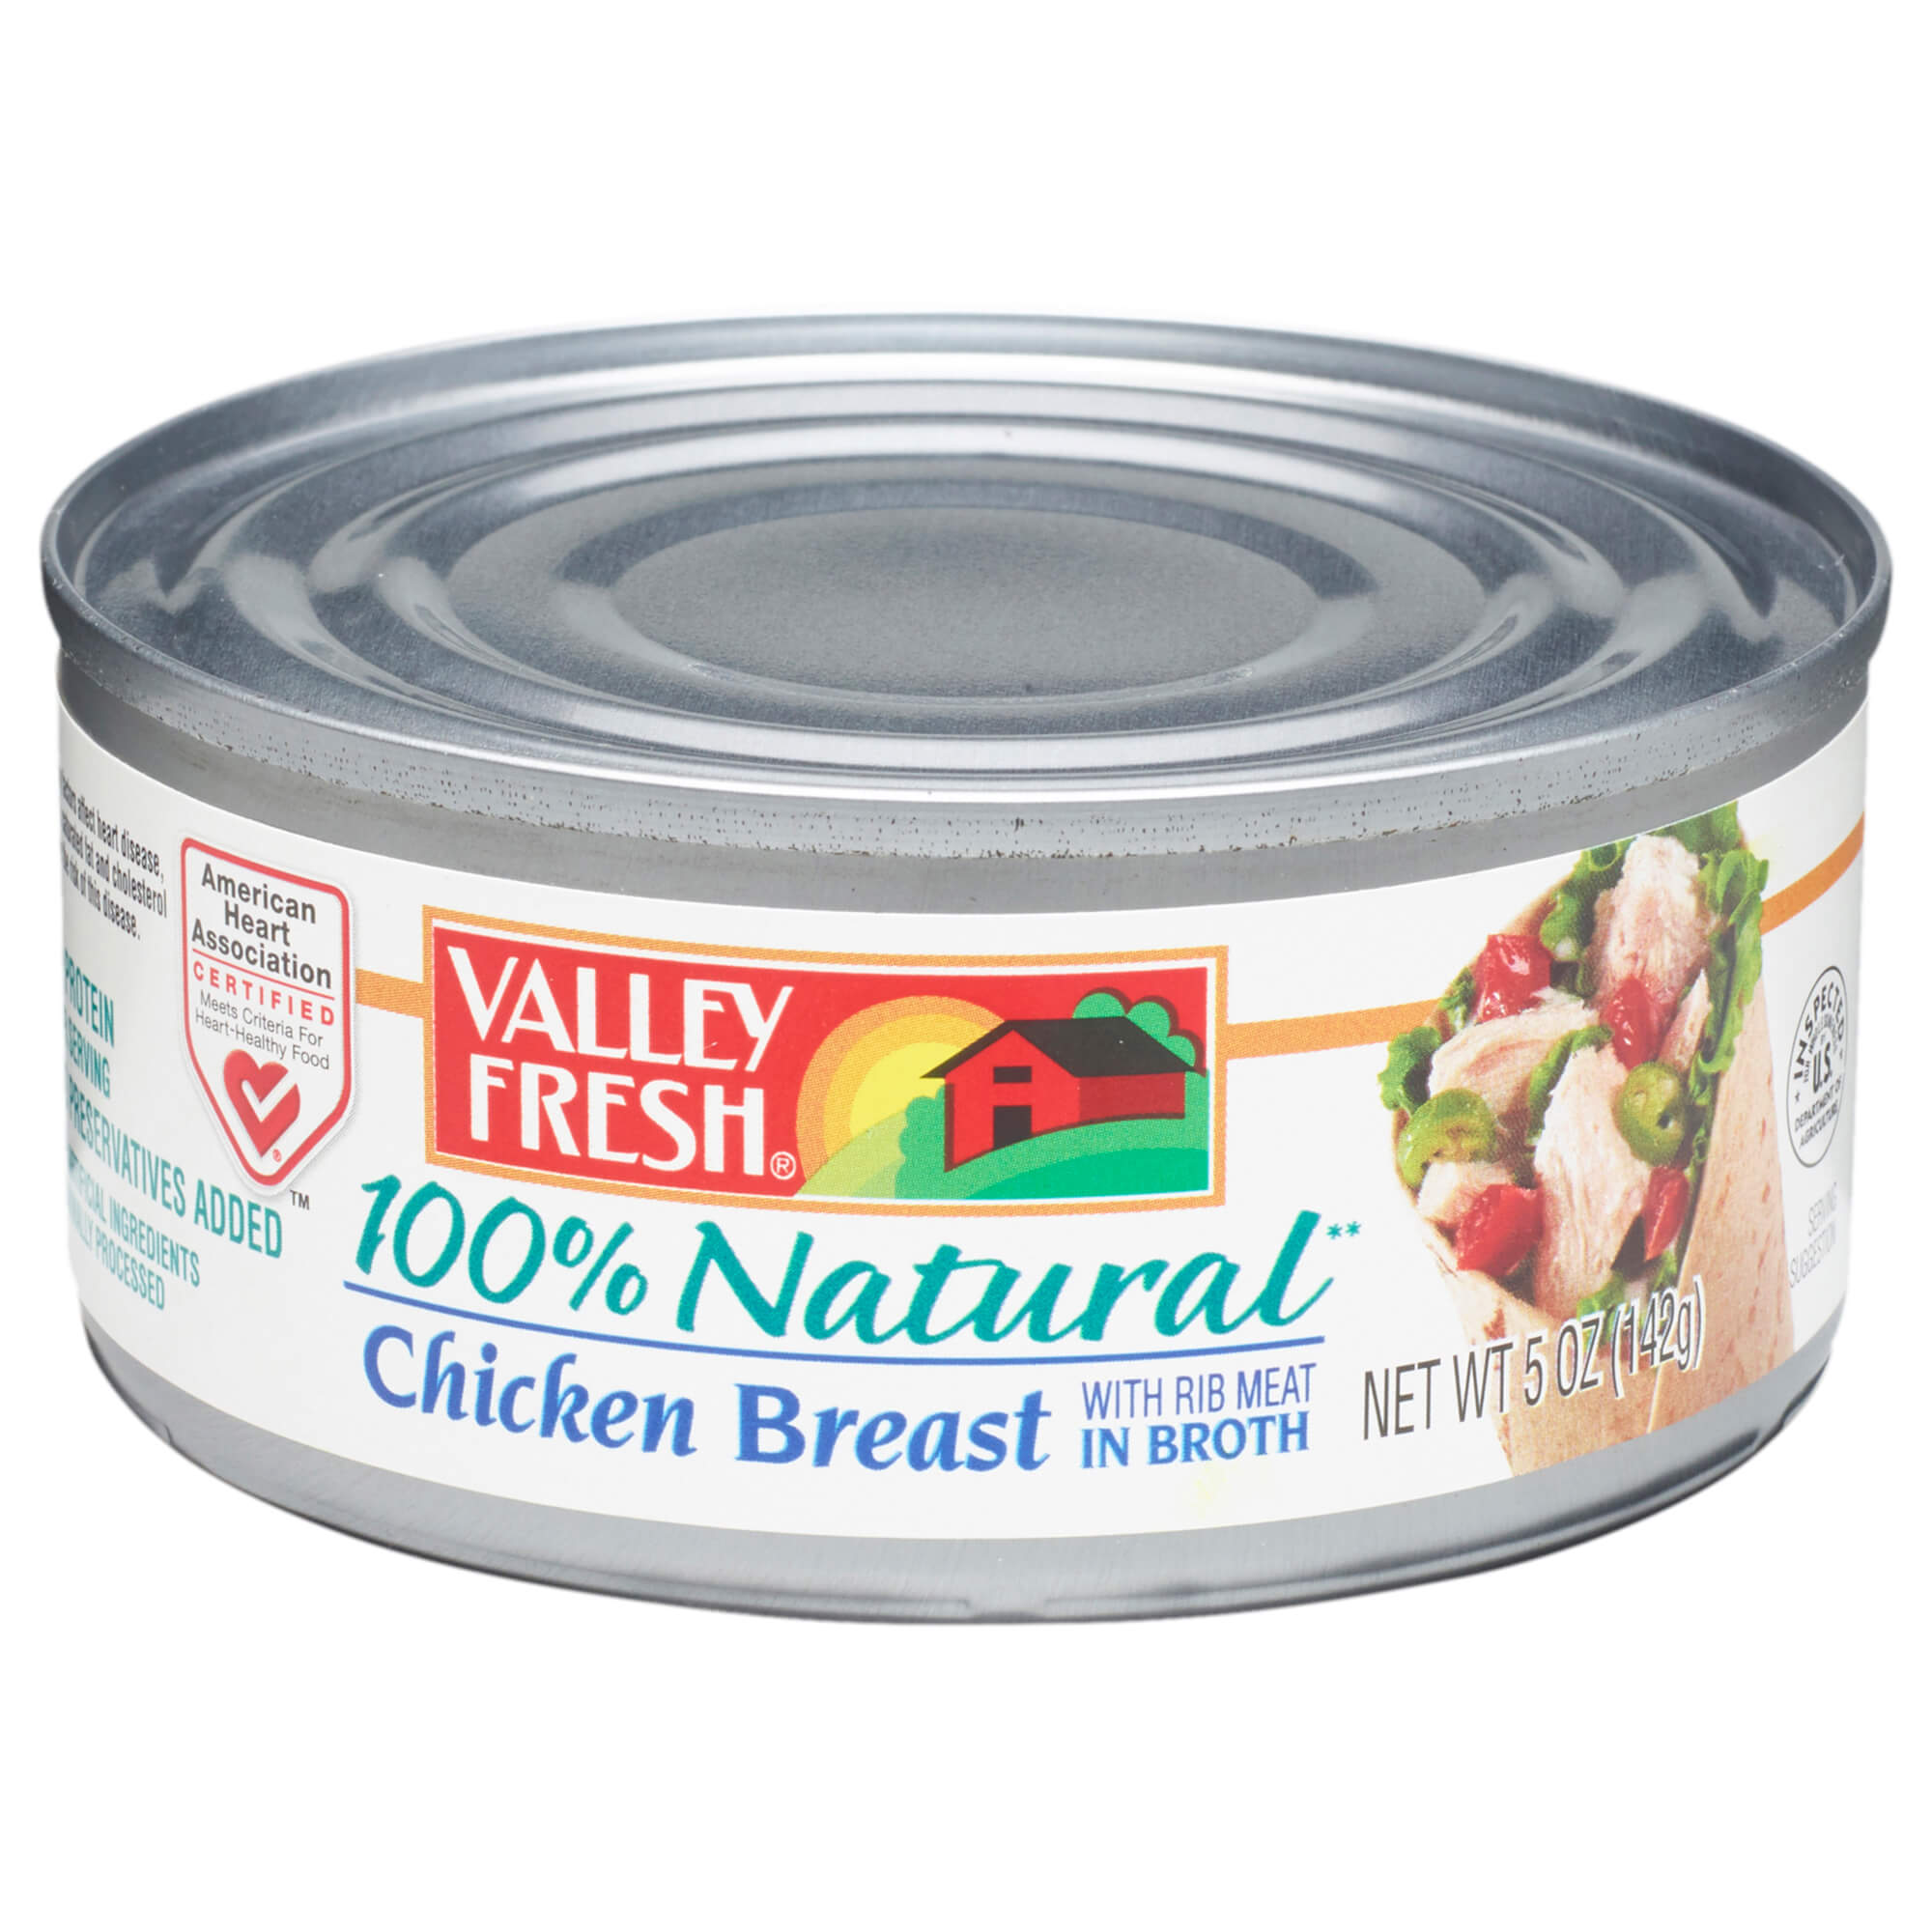 Valley Fresh 100% Natural Canned Chicken Breast with Rib Meat in Broth, 5 Ounce